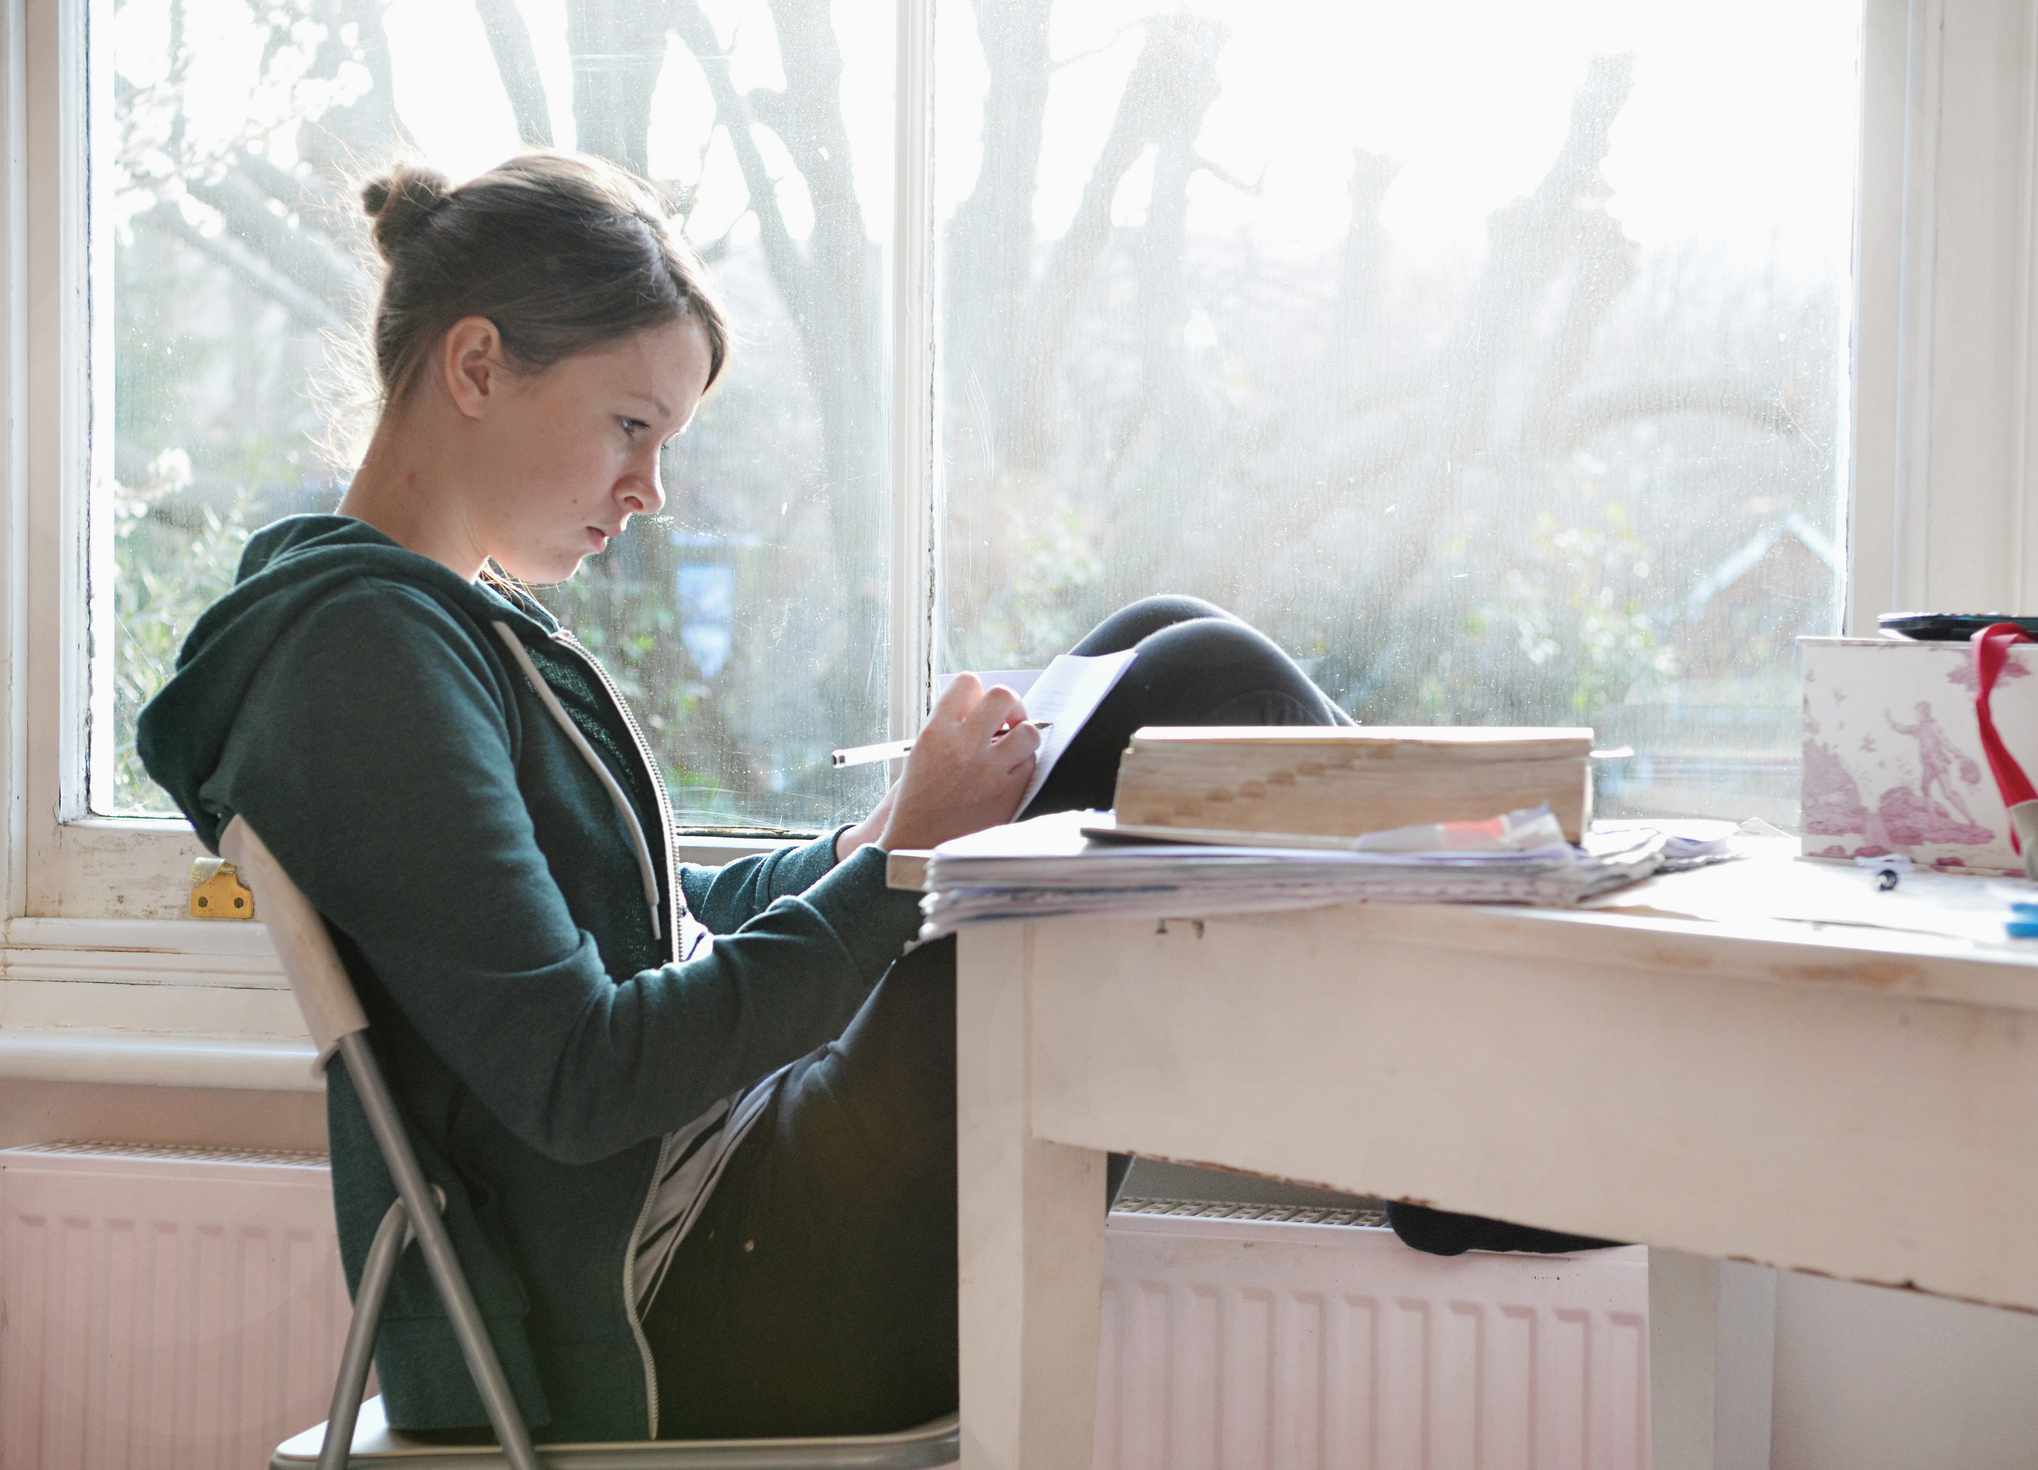 Girl studying and writing notes next to window